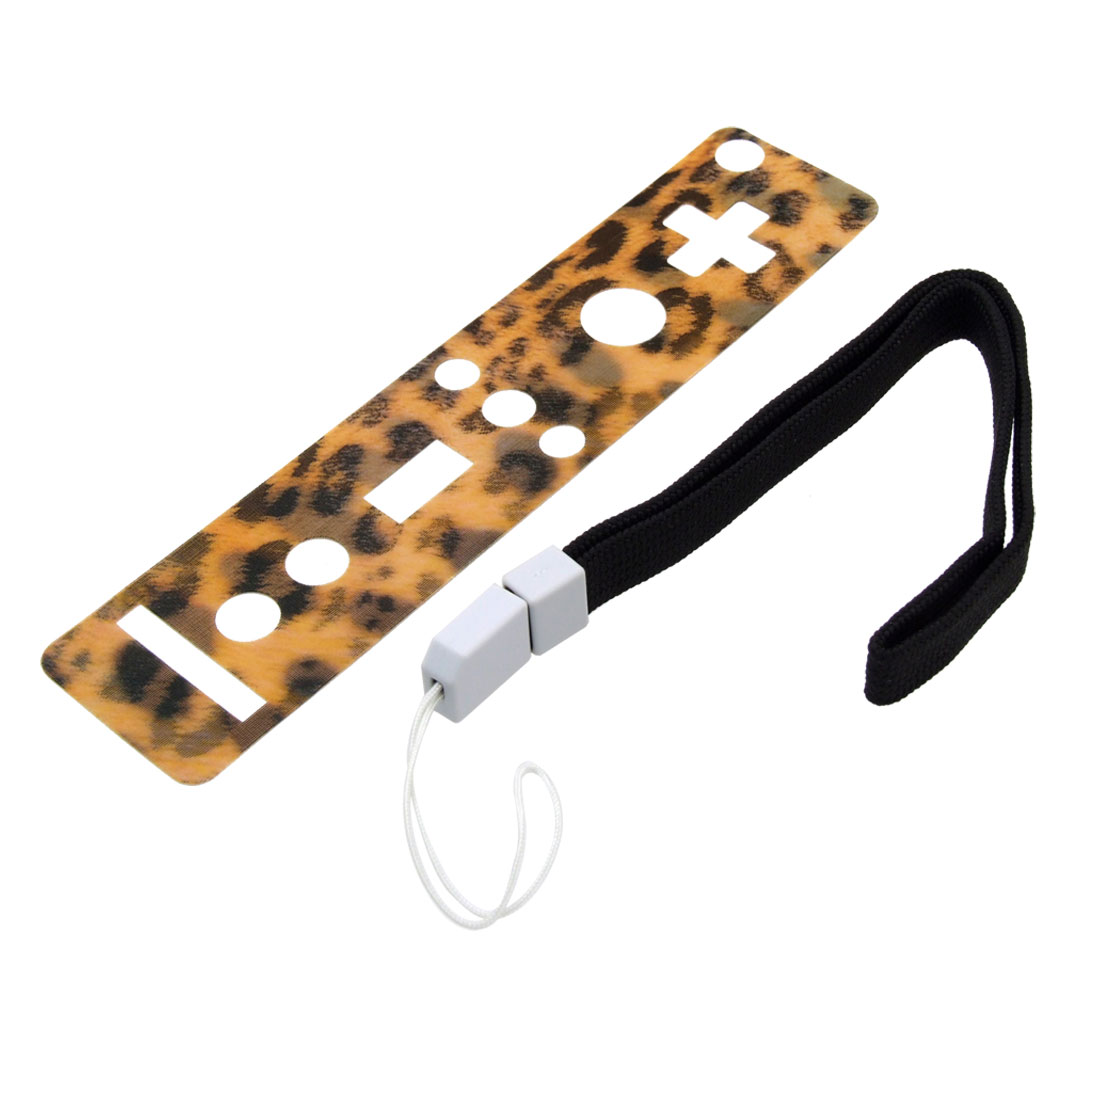 Nintendo Wii Remote Controller Protector Sheet And Wii Strap